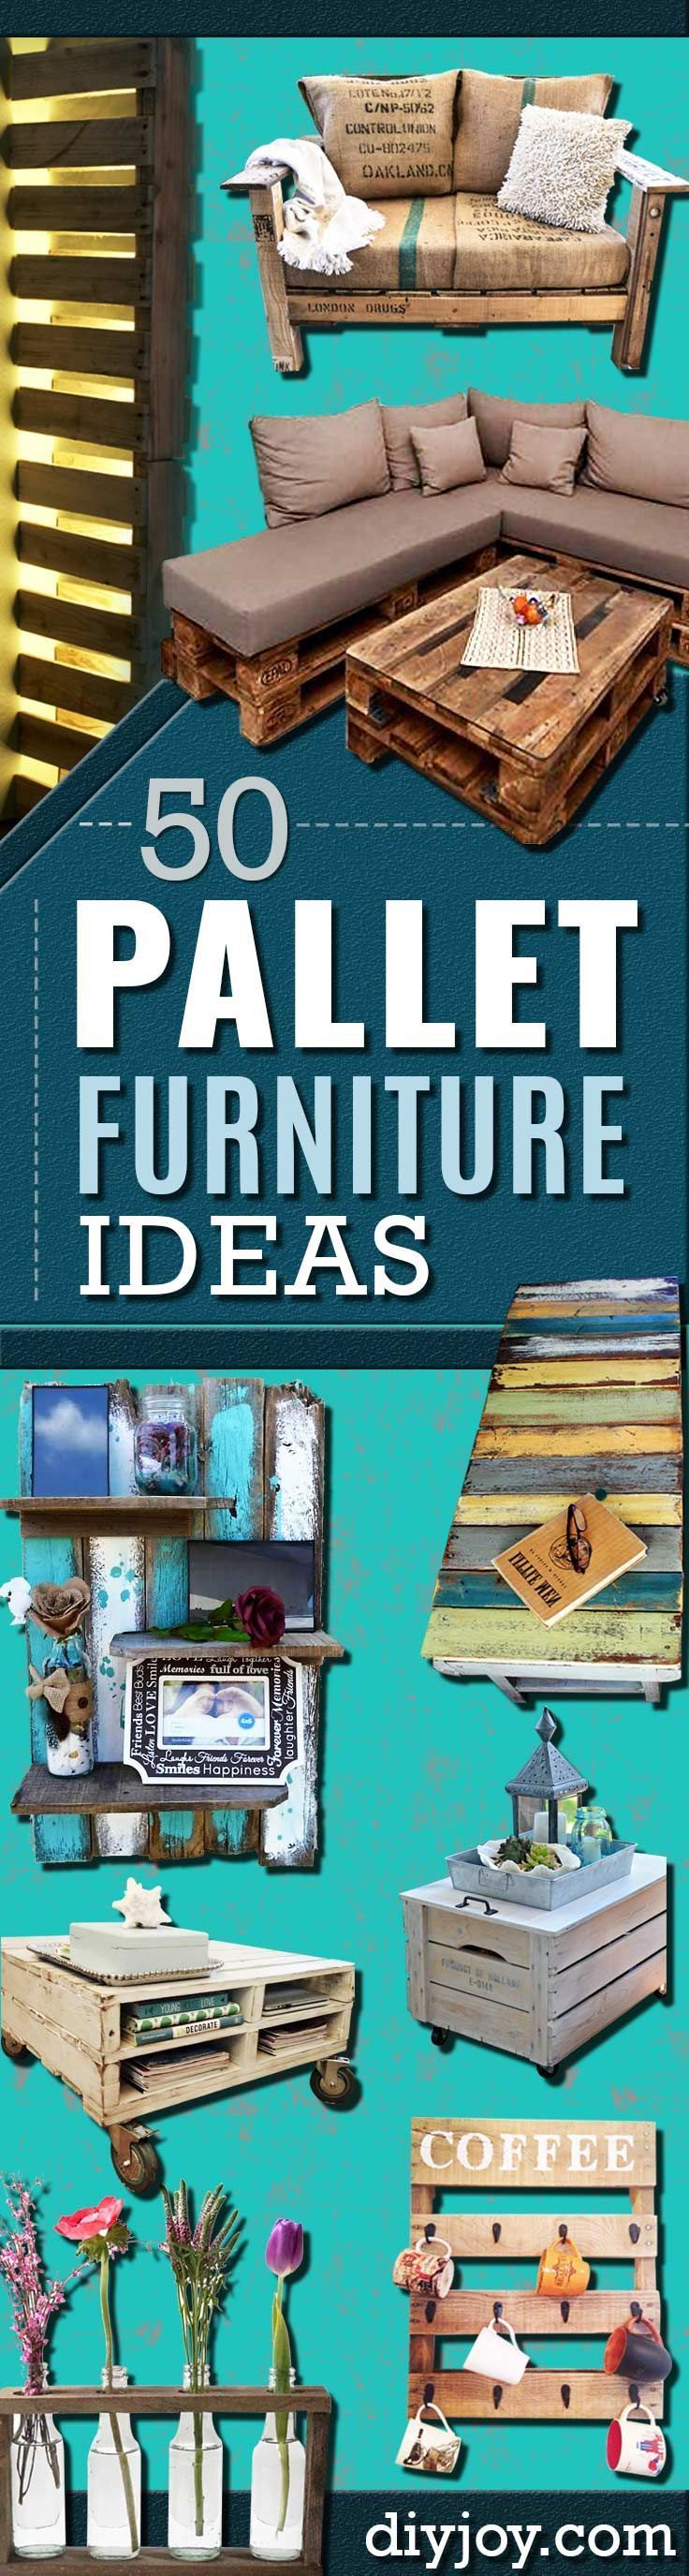 DIY Pallet Furniture Ideas - DIY Magic Storage Pallet Sofa - Best Do It Yourself Projects Made With Wooden Pallets - Indoor and Outdoor, Bedroom, Living Room, Patio. Coffee Table, Couch, Dining Tables, Shelves, Racks and Benches http://diyjoy.com/diy-pall